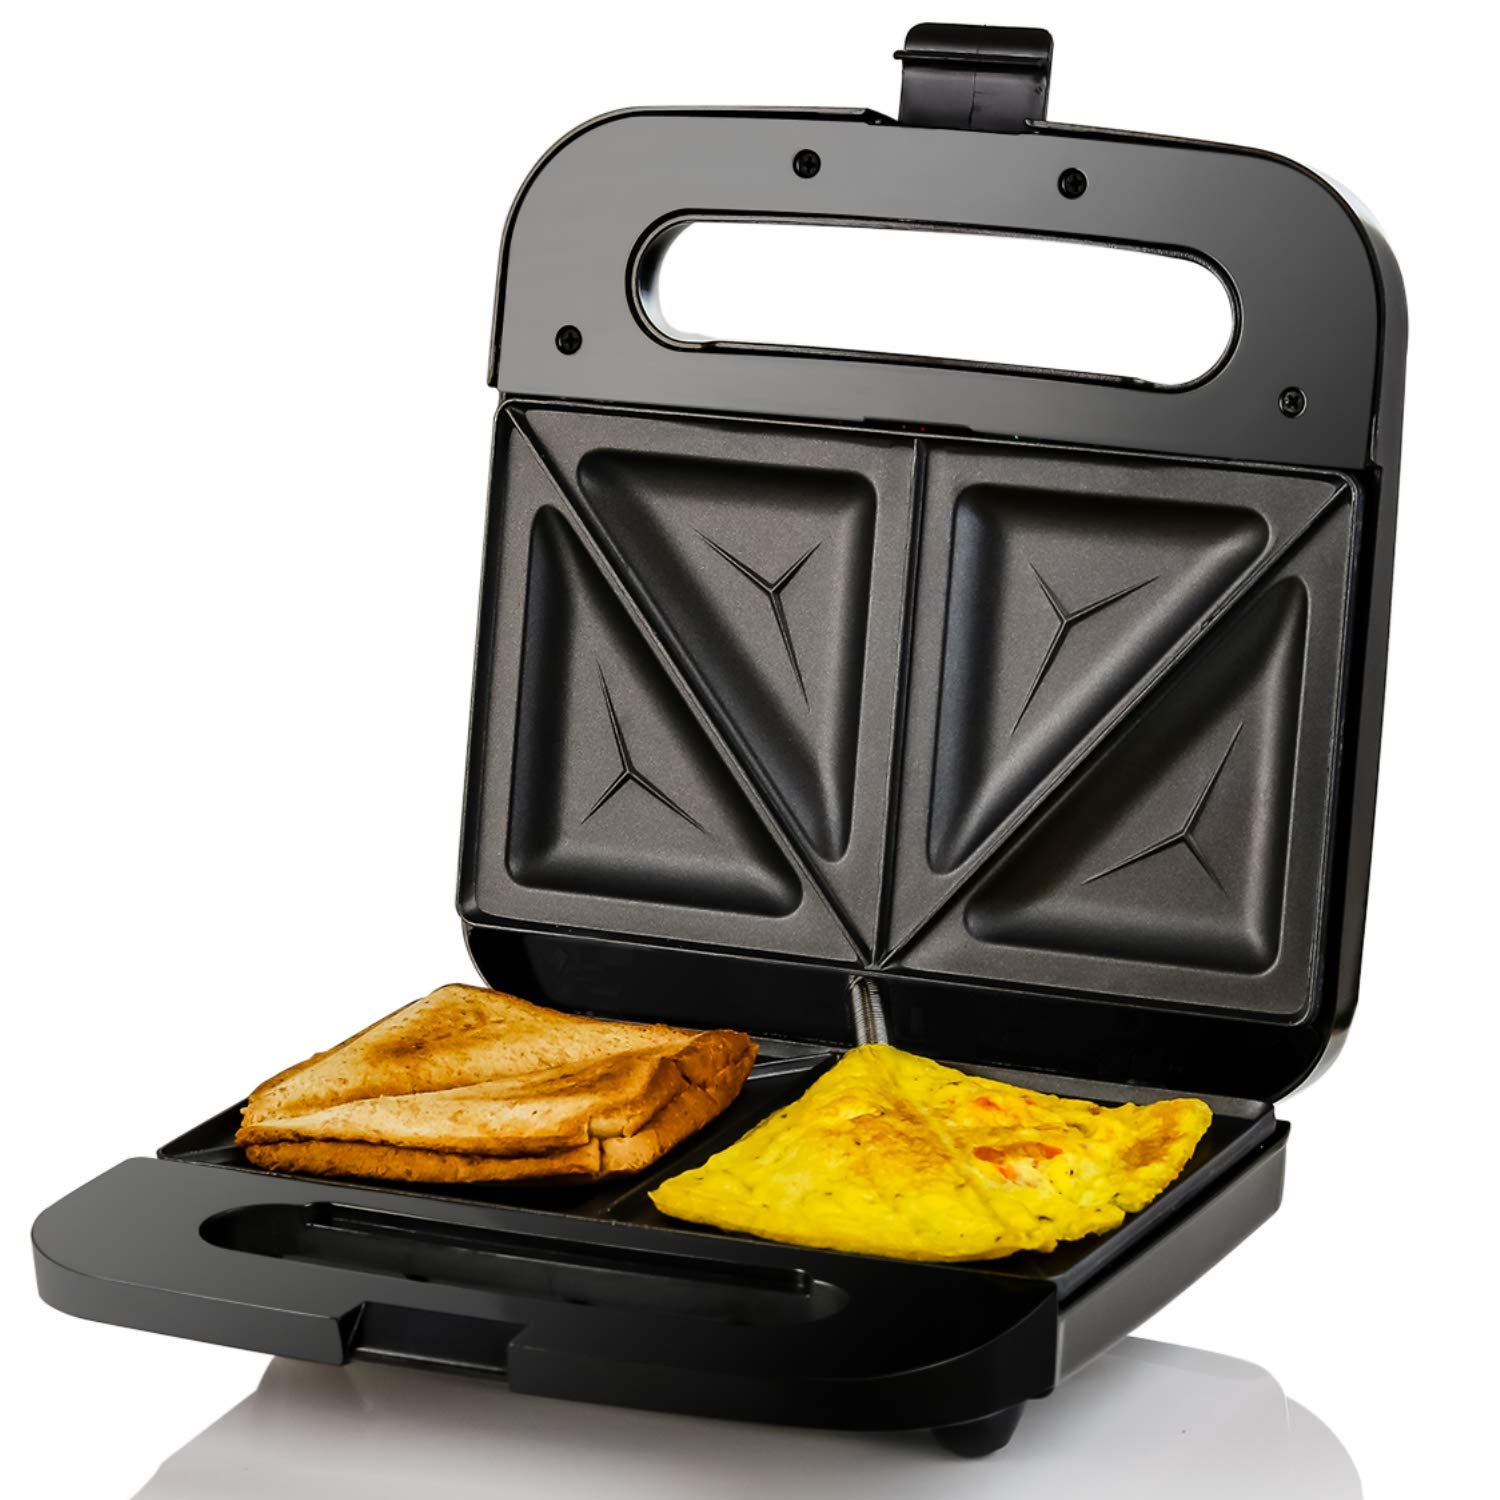 Ovente GPS401B Sandwich Maker Non Stick Electric Grill, 750W, Black, 2-Slice by Ovente